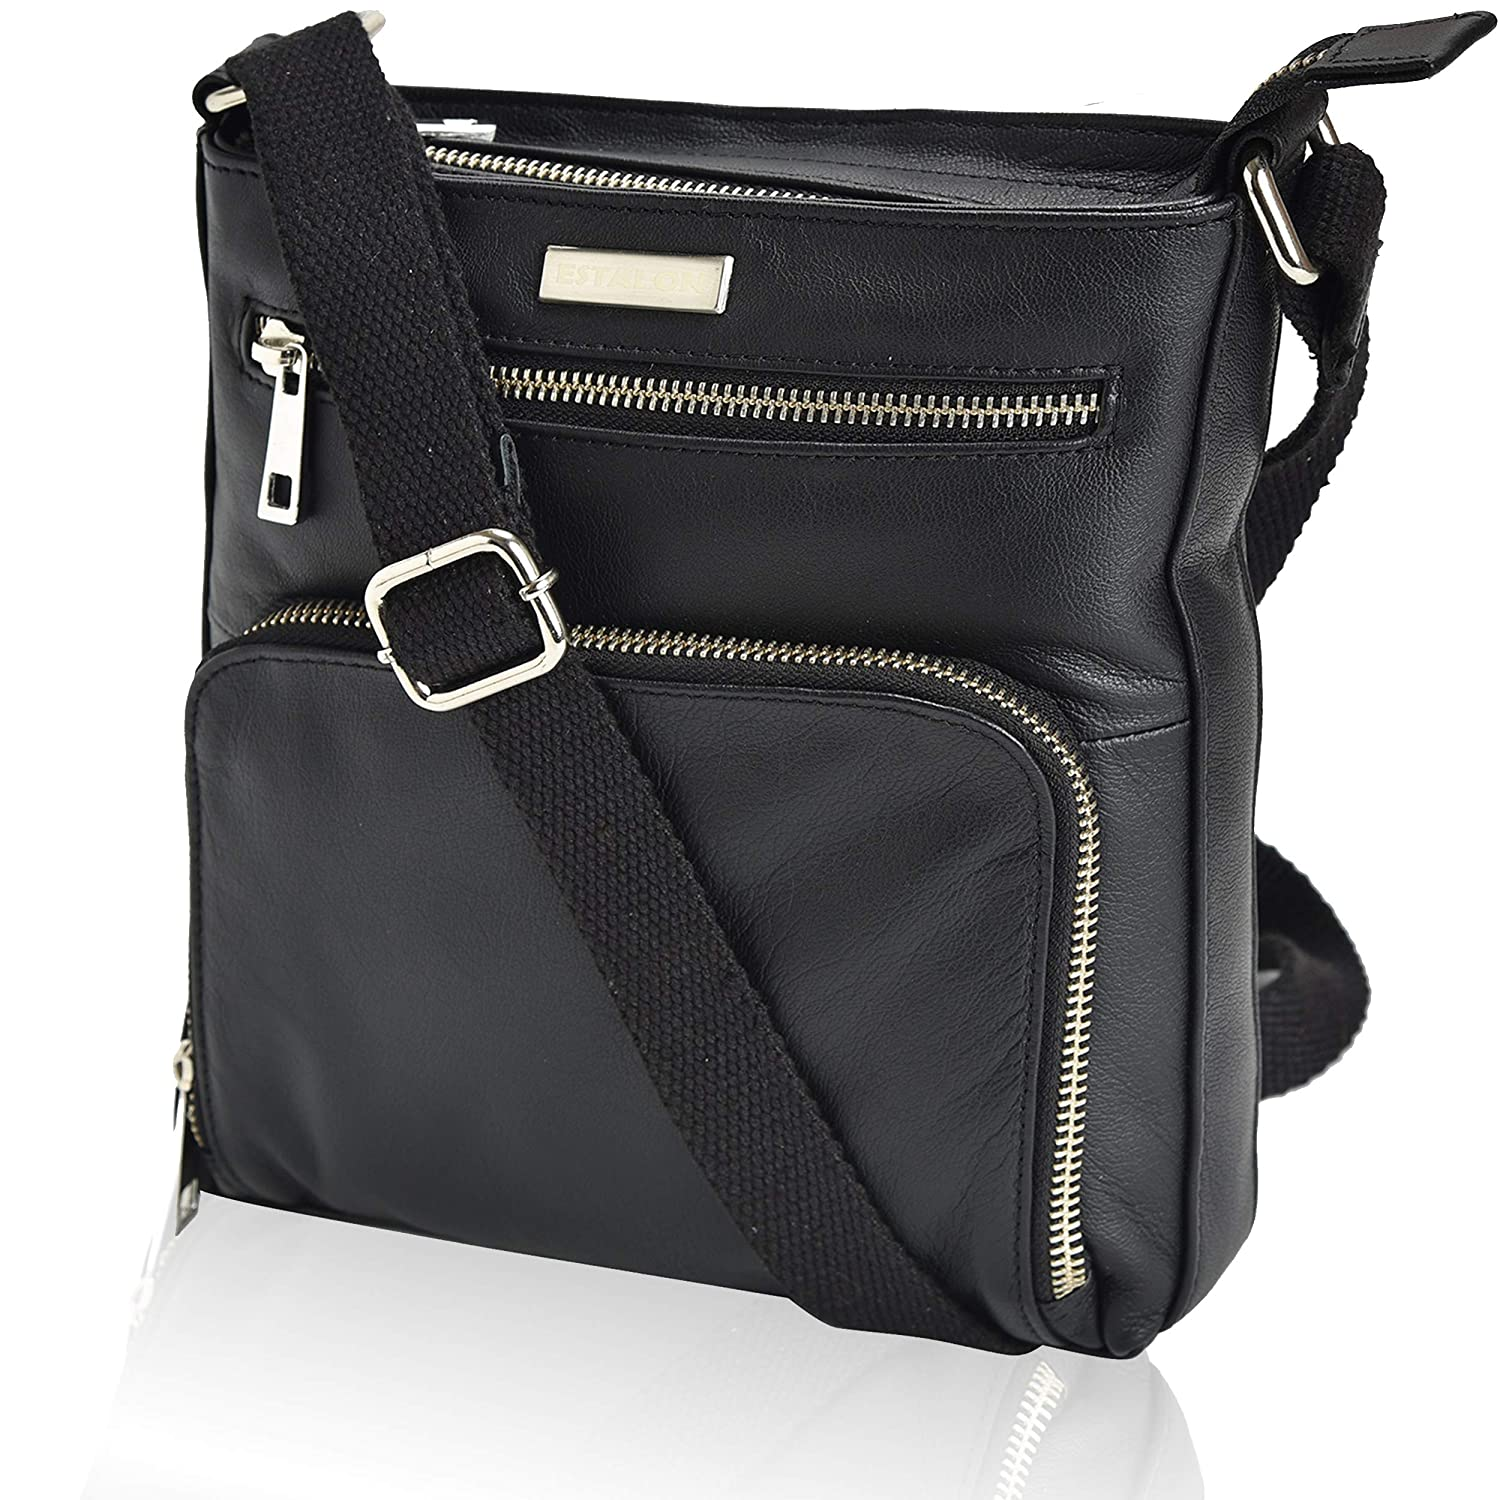 40bf98bce6dc9b Amazon.com: Leather Crossbody Purses and Handbags for Women-Premium  Crossover Bag Over the Shoulder Womens: Clothing